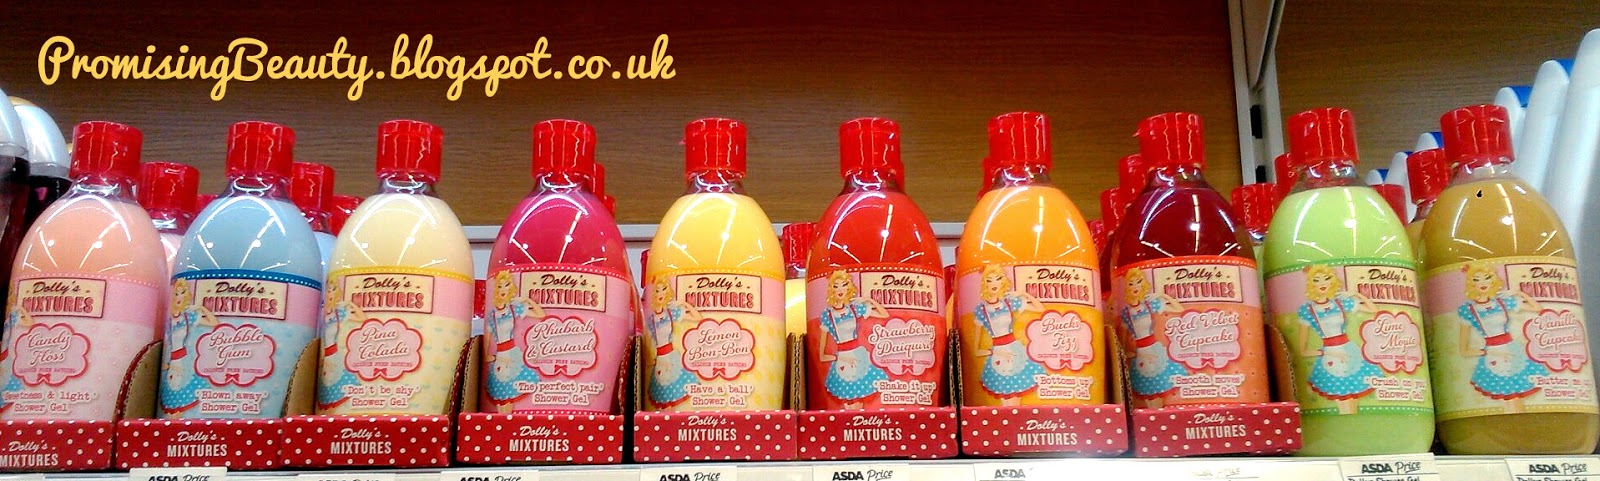 Dollys mixtures shower gel, bubble bath on asda shelf, full range of flavours